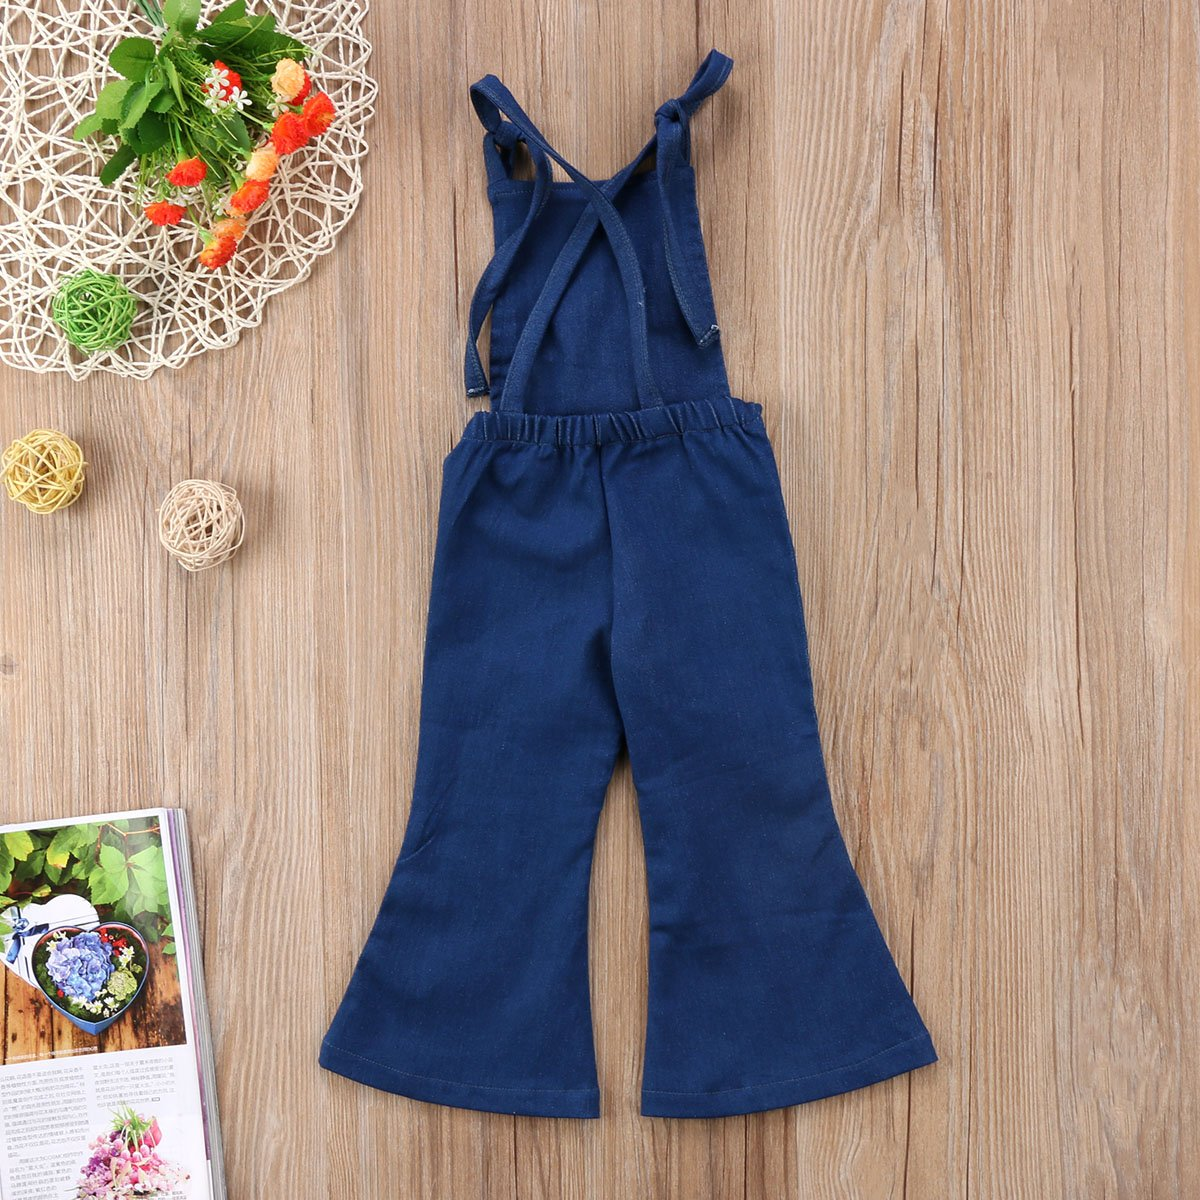 Pudcoco Baby Girls Little Kids Suspender Overall Flared Denim Jeans Jumpsuit Bell Elastic Blue Pants (Blue, 4-5T) by Pudcoco (Image #4)